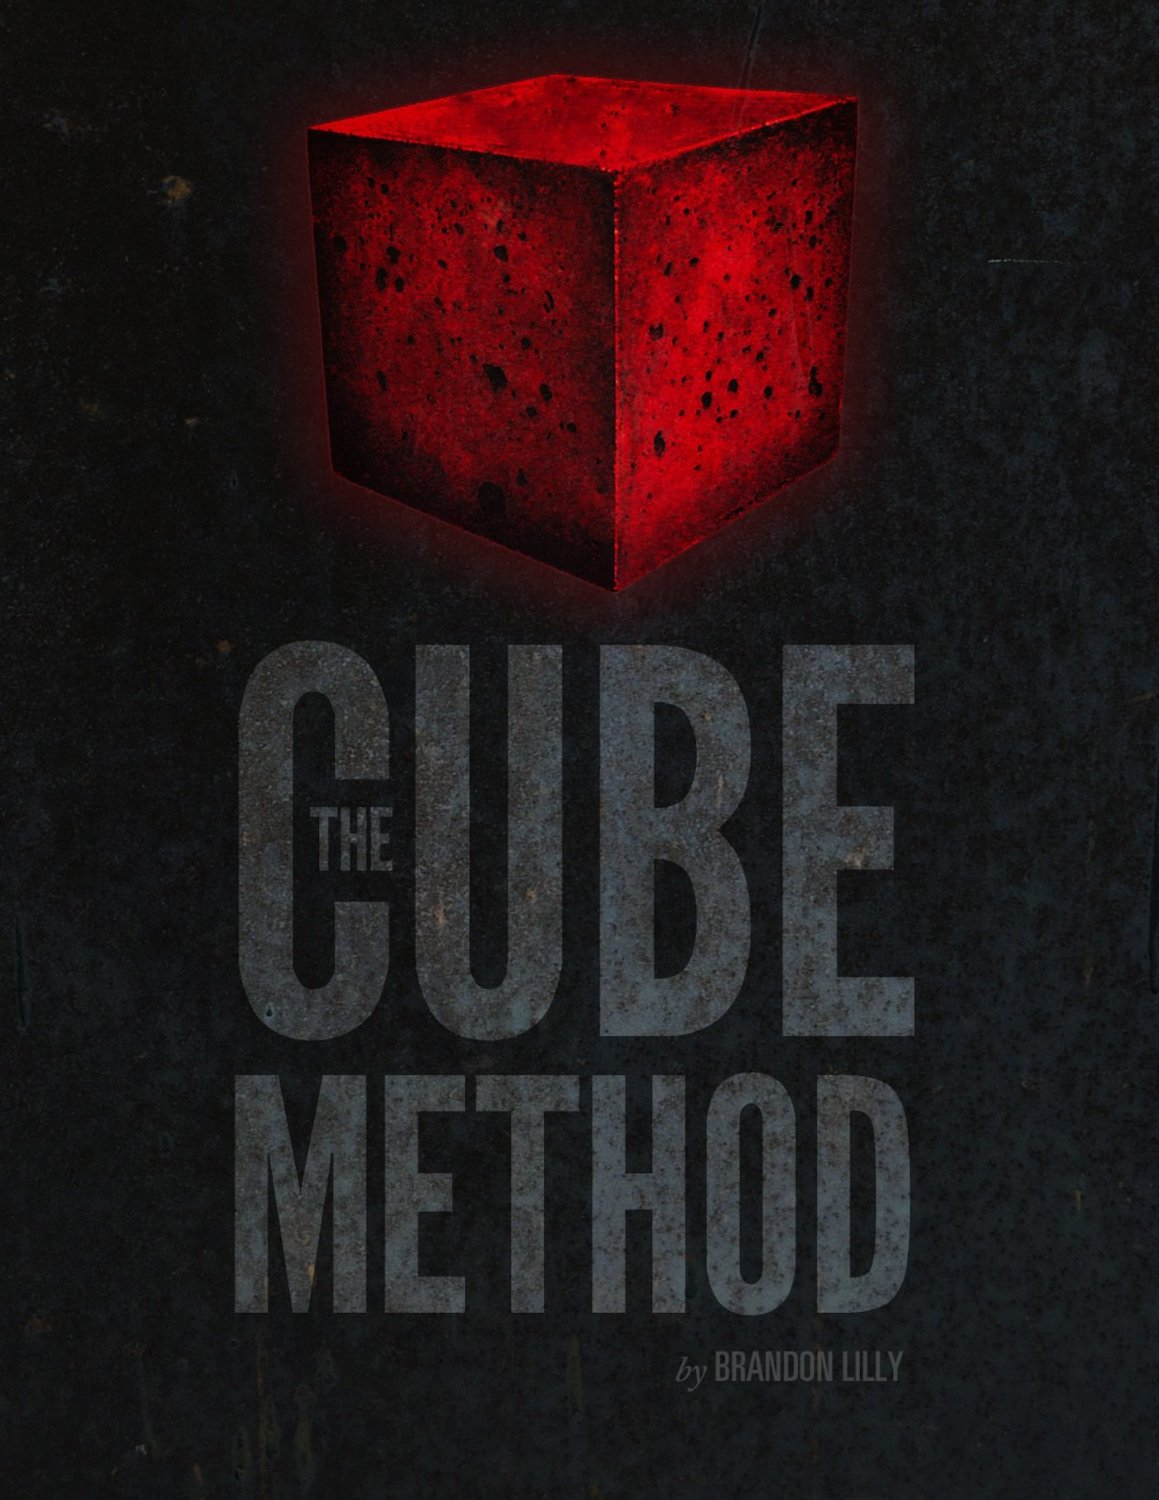 Brandon Lilly's Cube Method